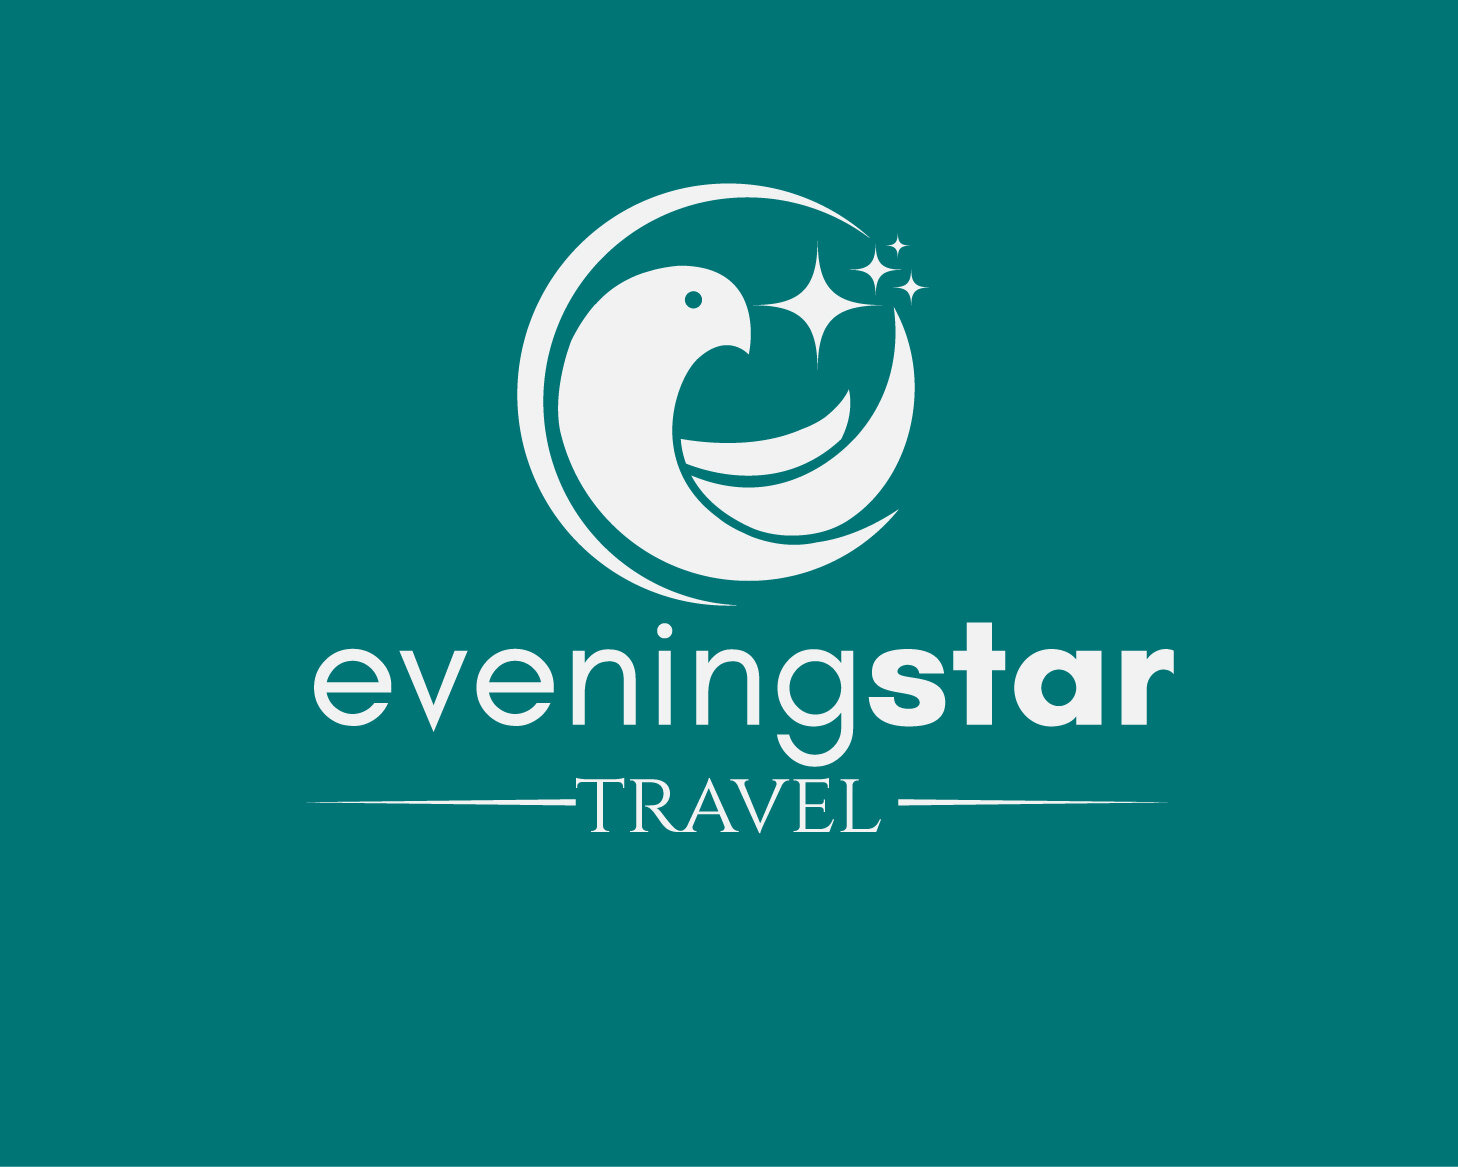 Eveningstar Travel